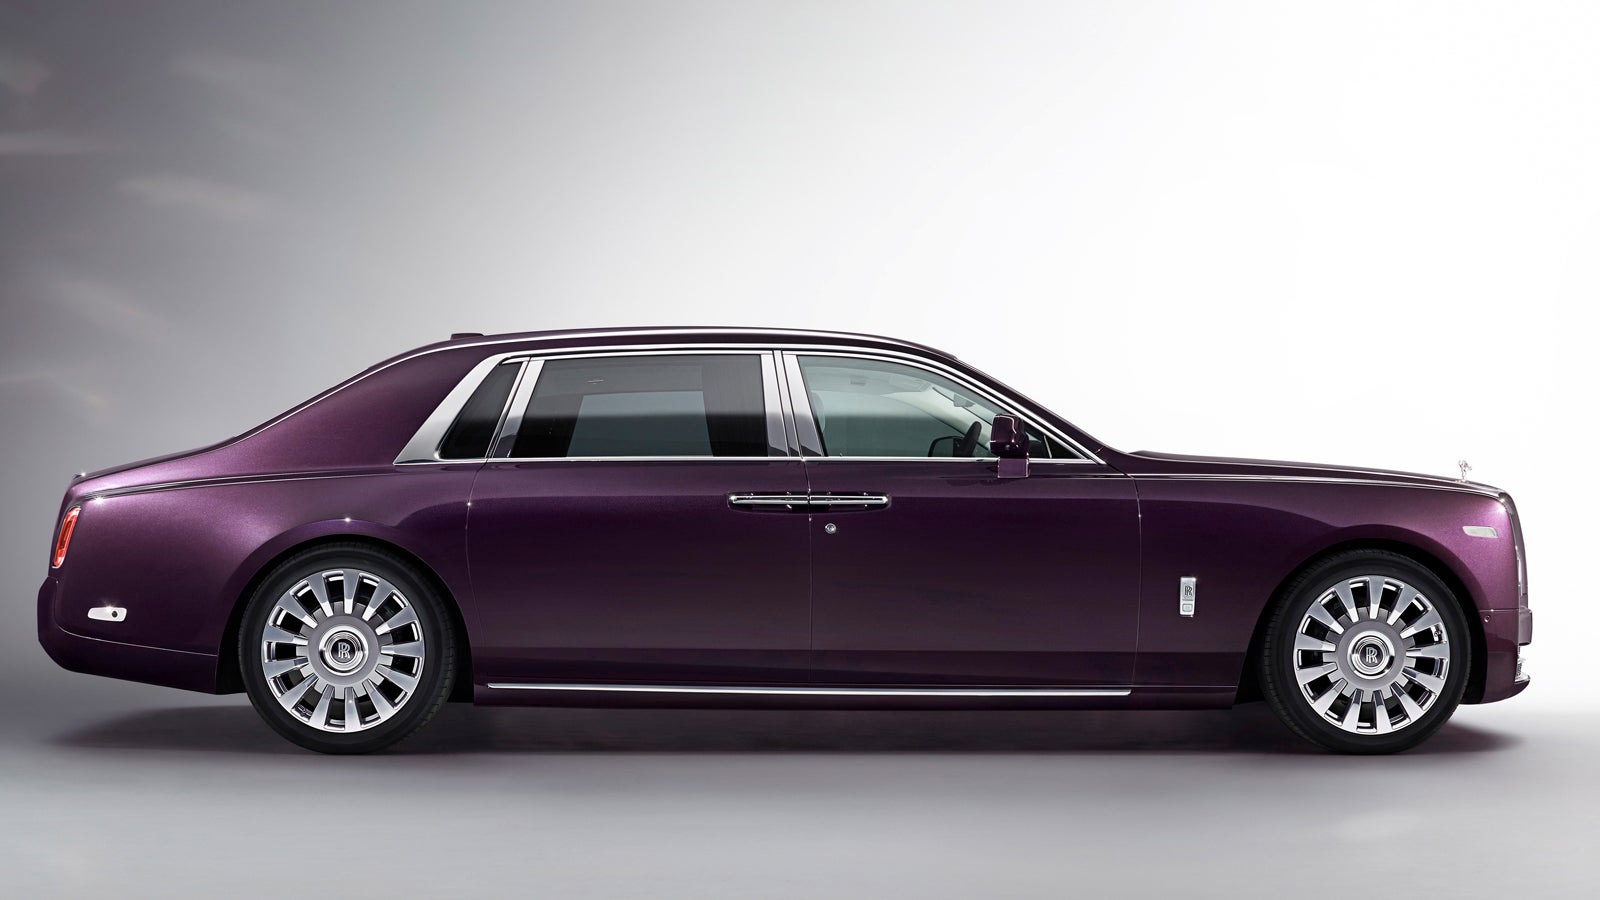 2018 Rolls-Royce Phantom VIII Is The 'Most Silent' Car In The World